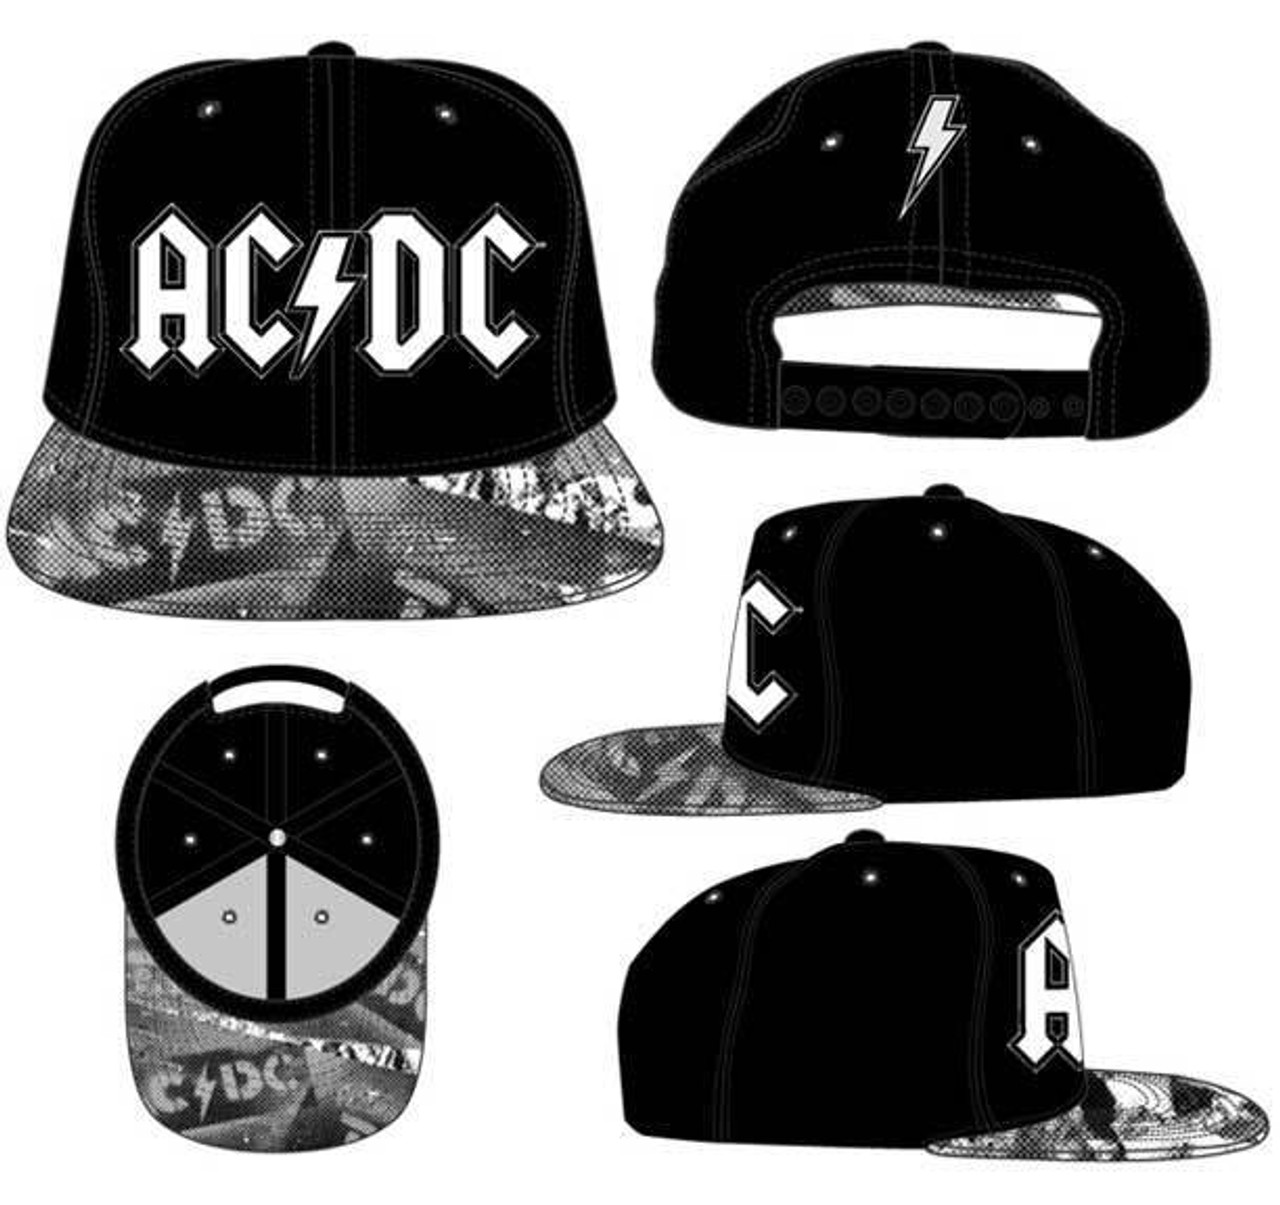 cdd497ef622 AC DC Metal Rock Music Axl Rose Angus Young Snapback Flatbill Hat  SACJ-100032 - Fearless Apparel